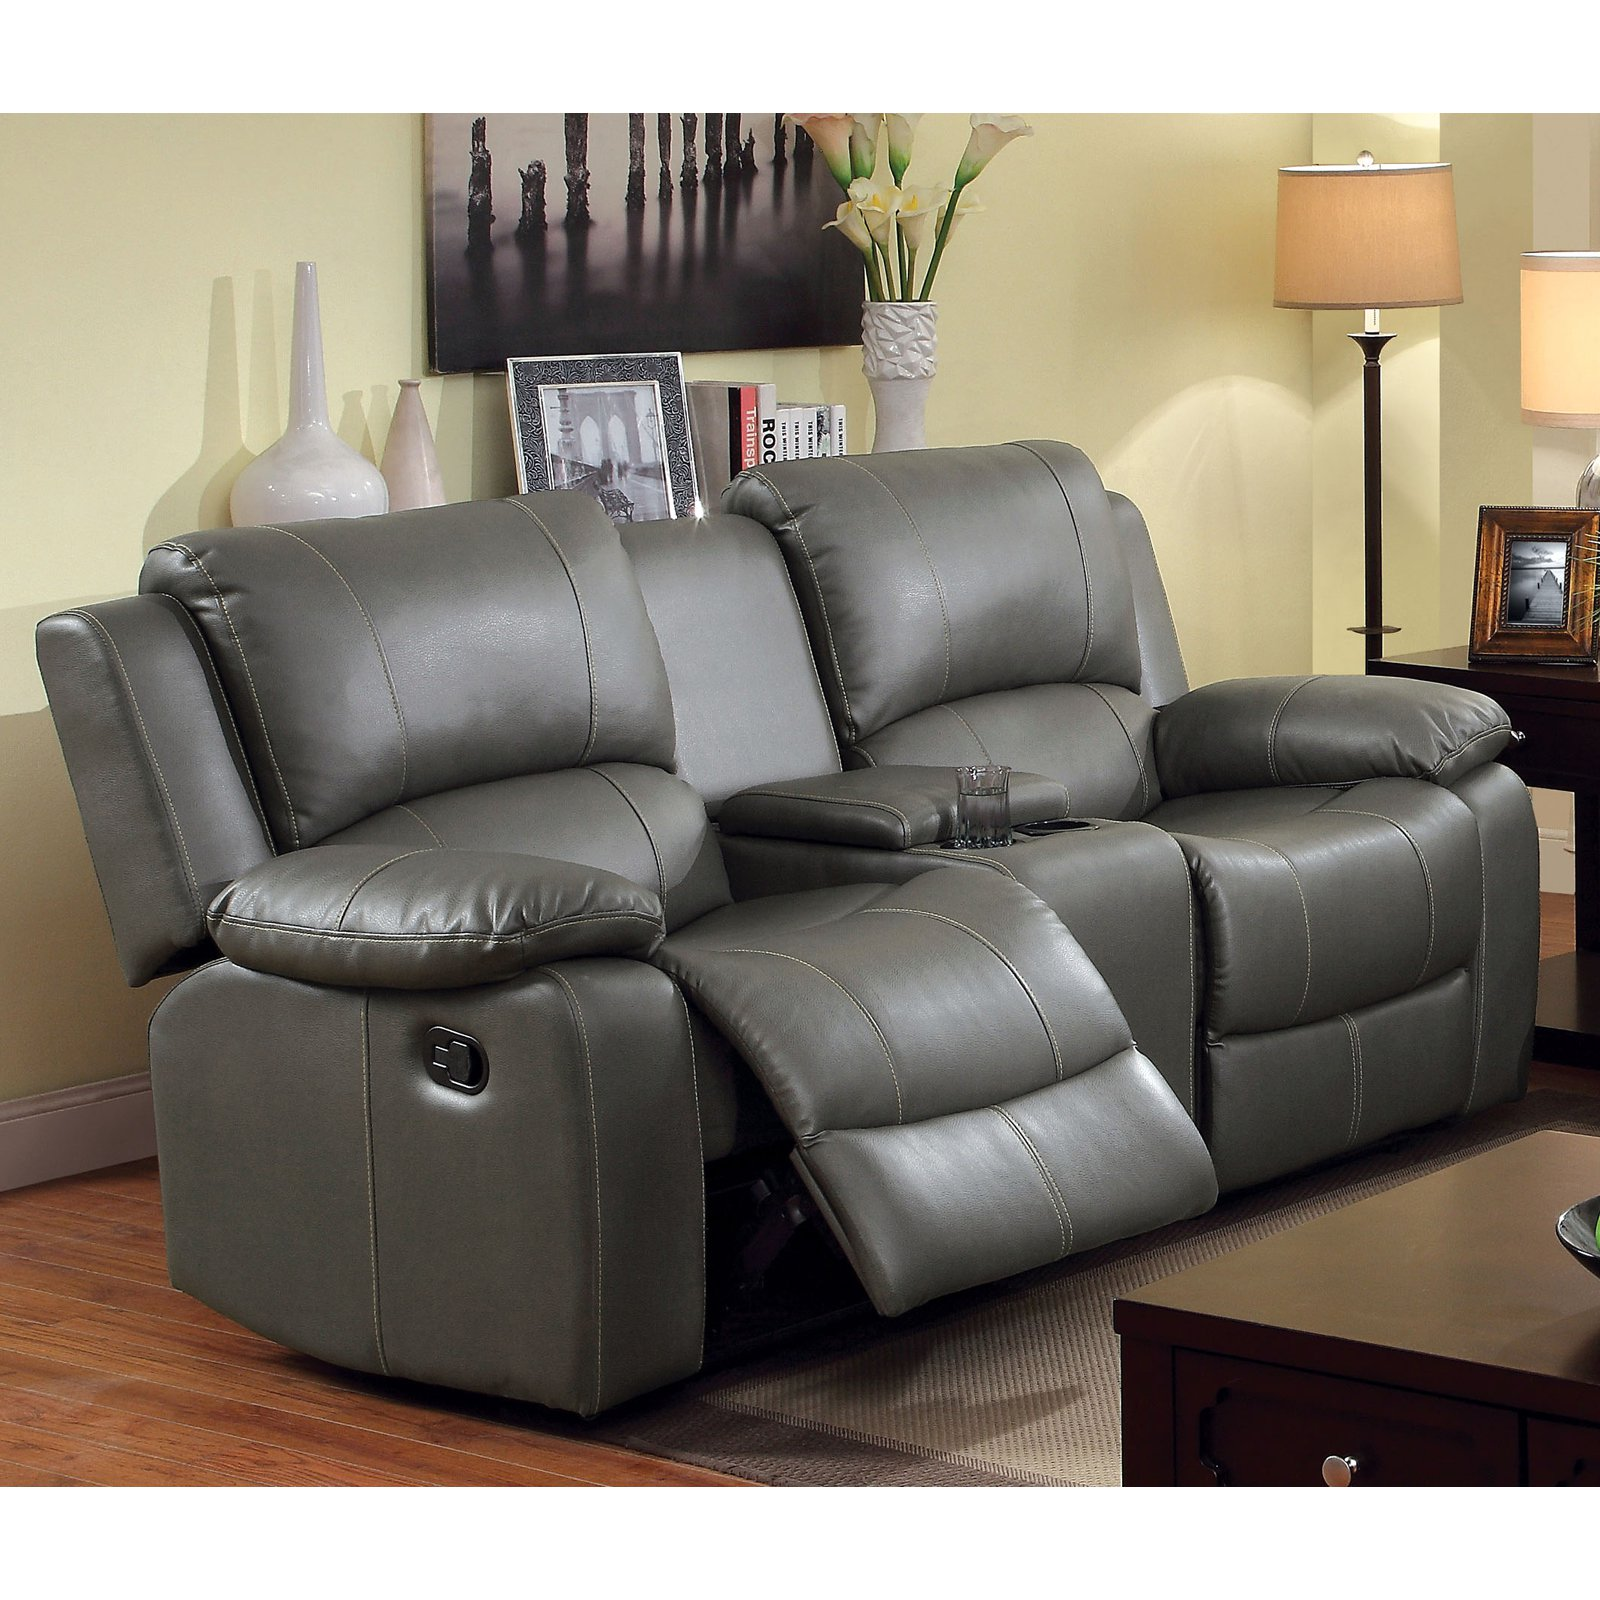 Furniture of America Rathbone Recliner Loveseat with Center Console & Recliner Loveseats islam-shia.org